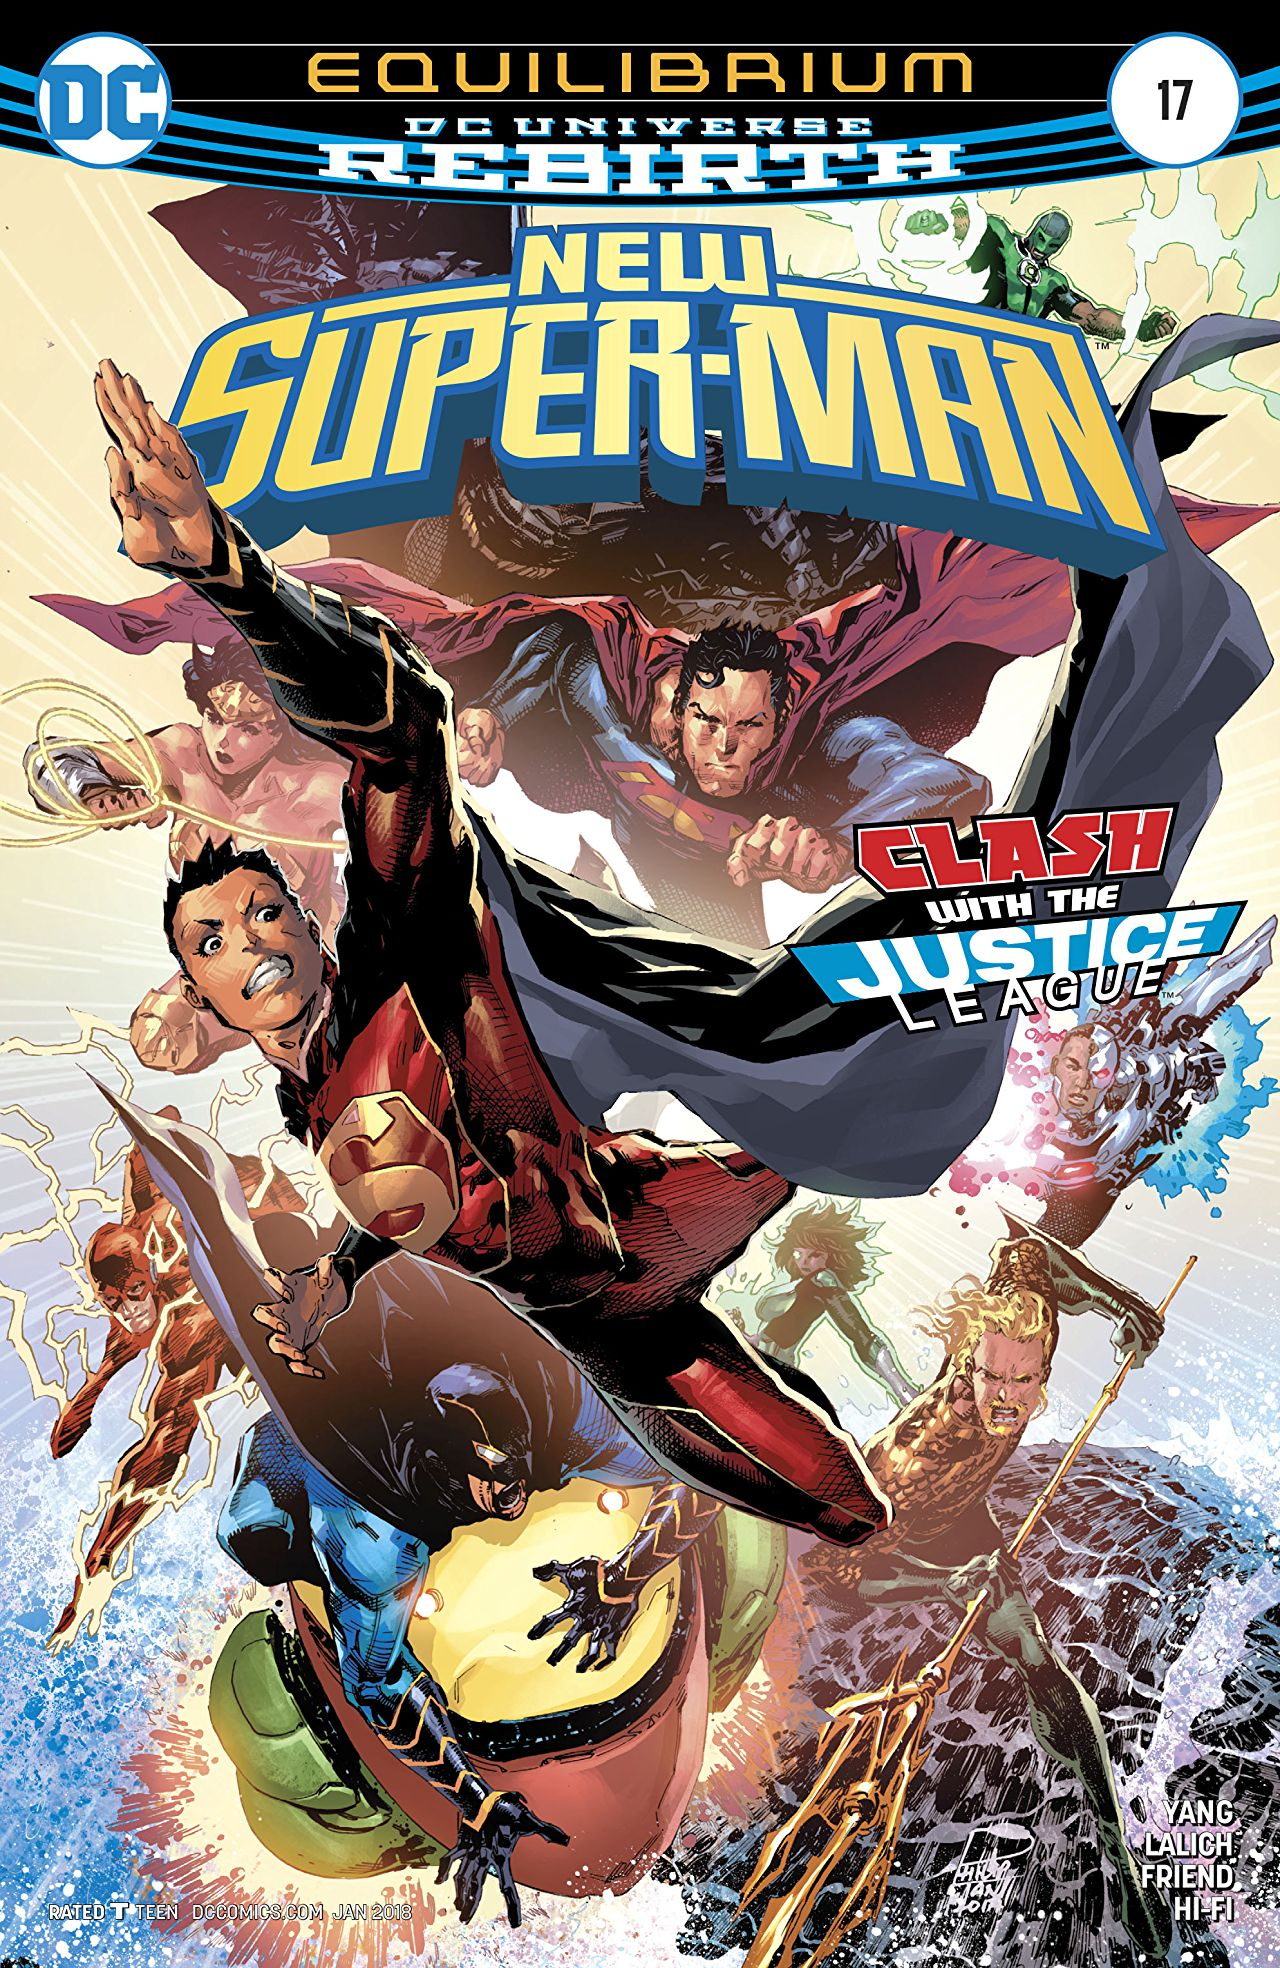 New Super-Man Vol 1 17